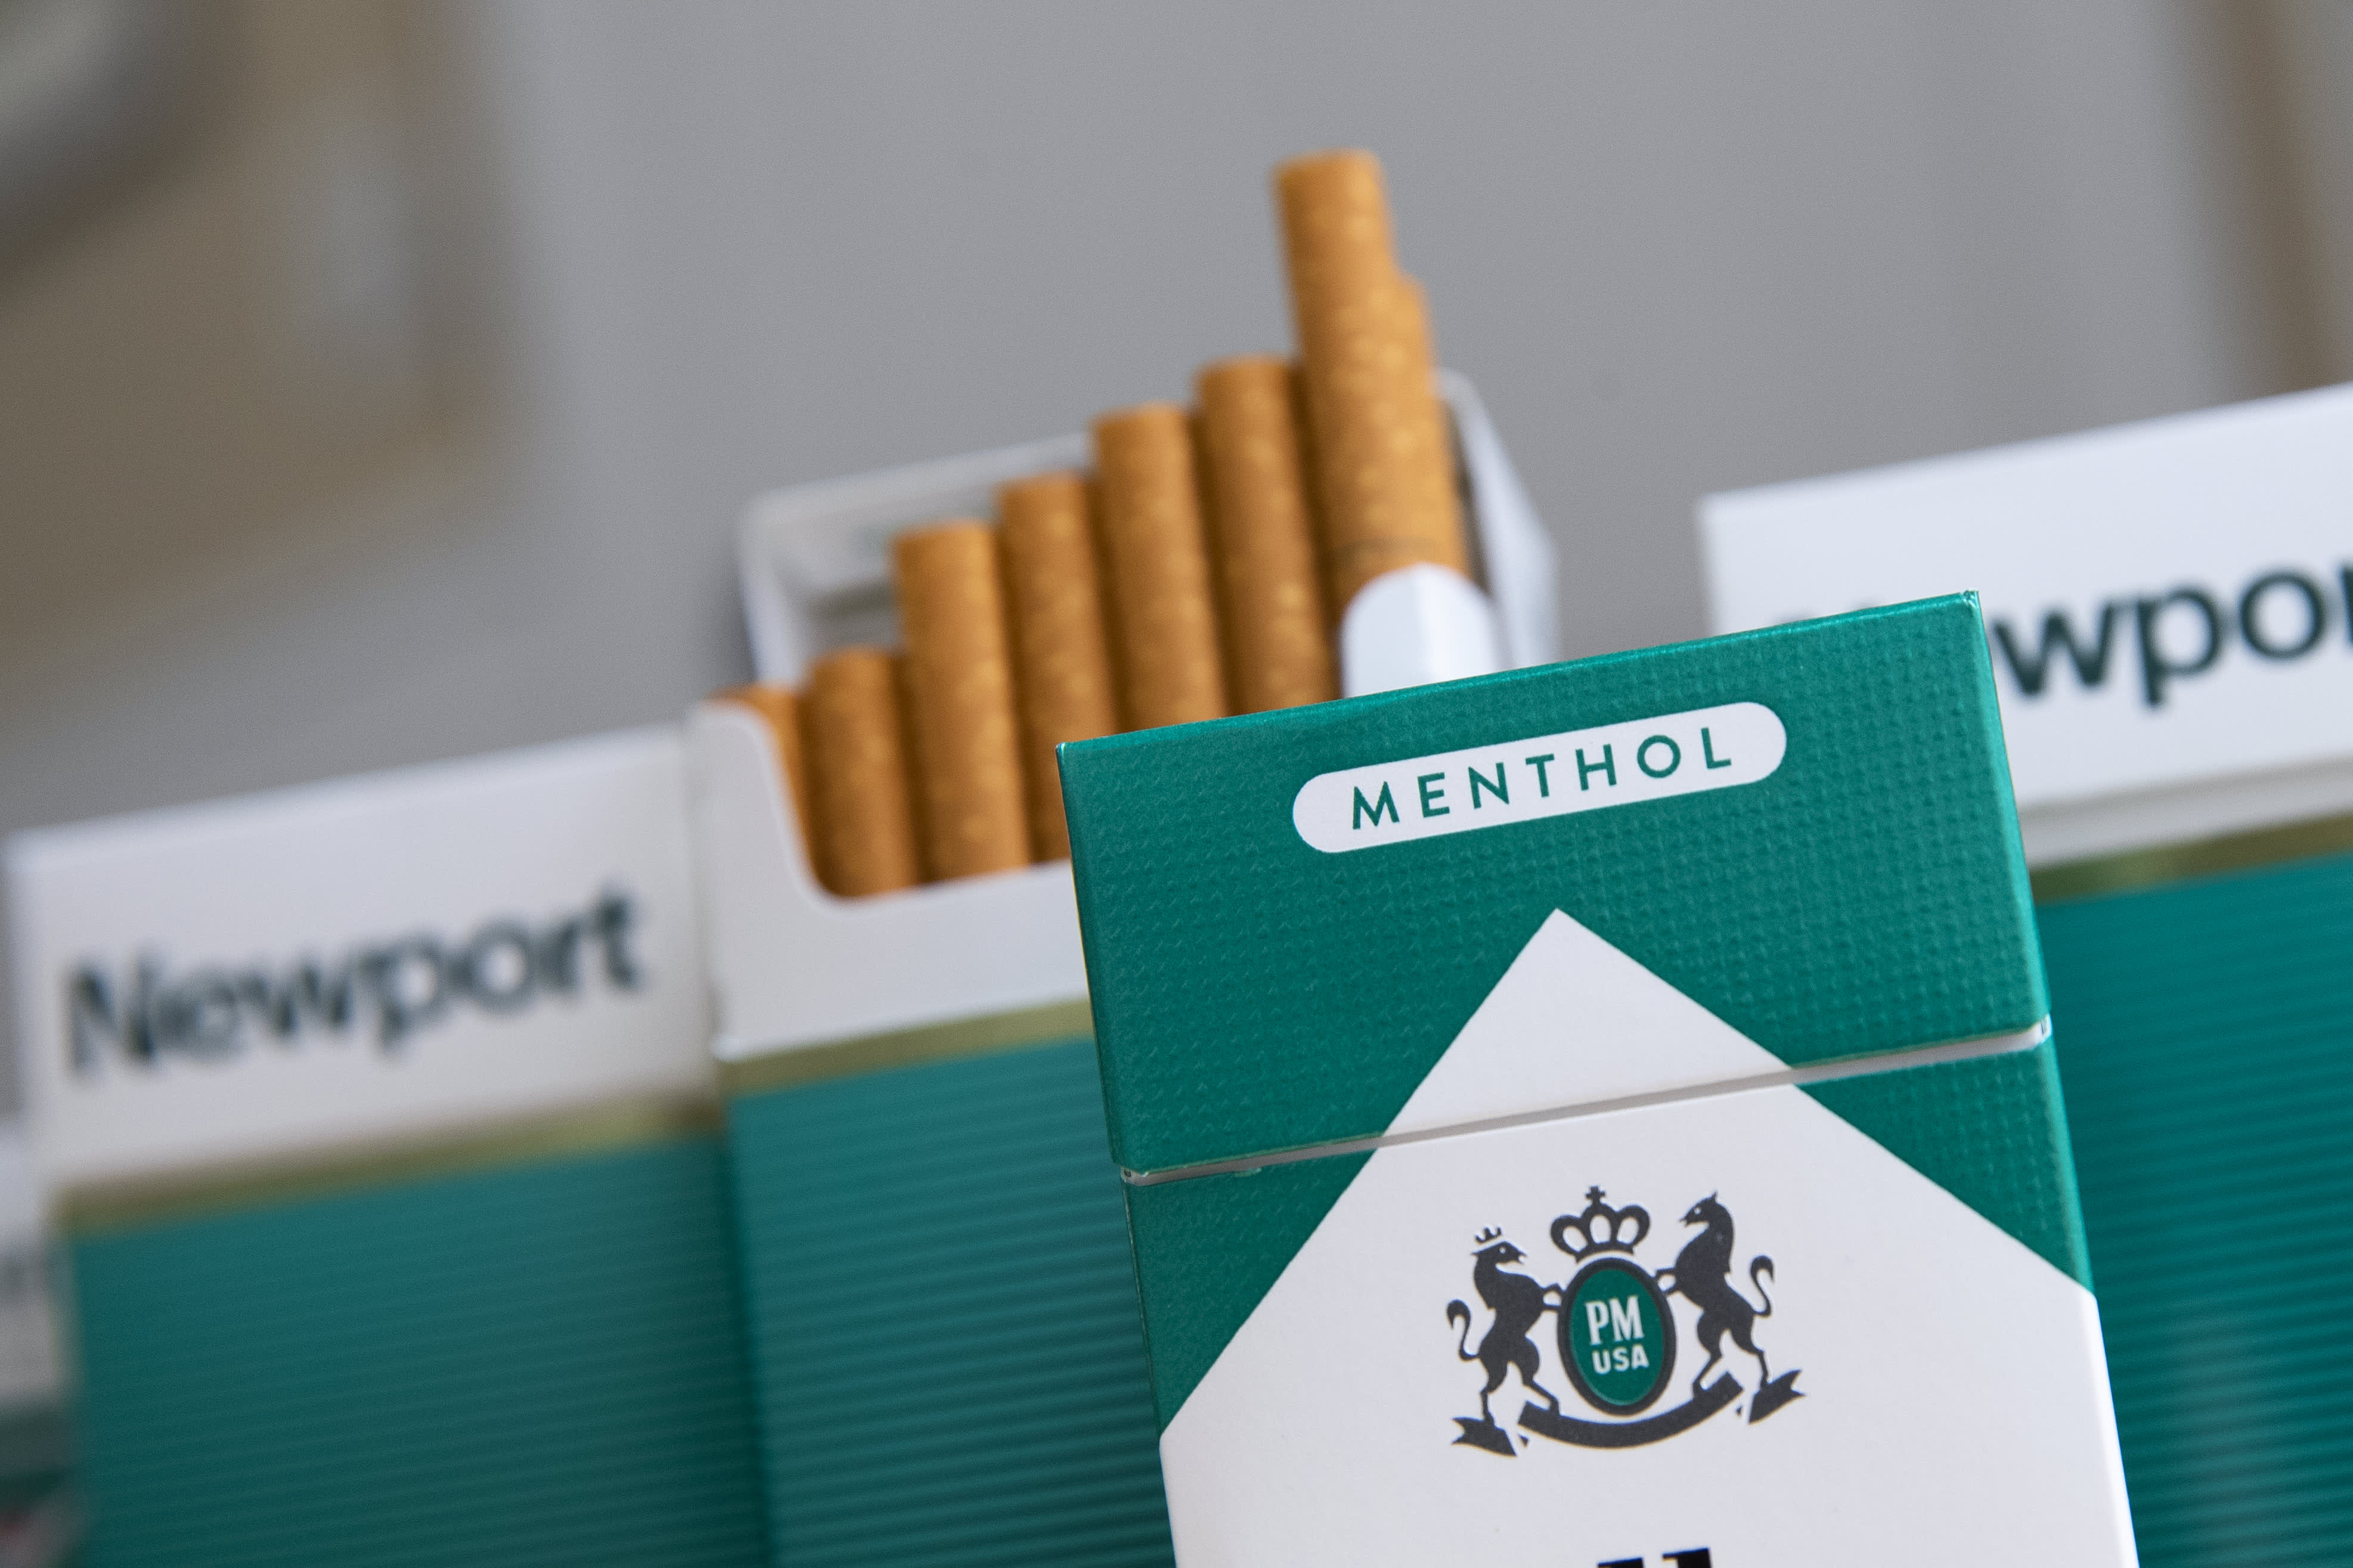 FDA to propose ban on menthol-flavored cigarettes, with industry likely to challenge